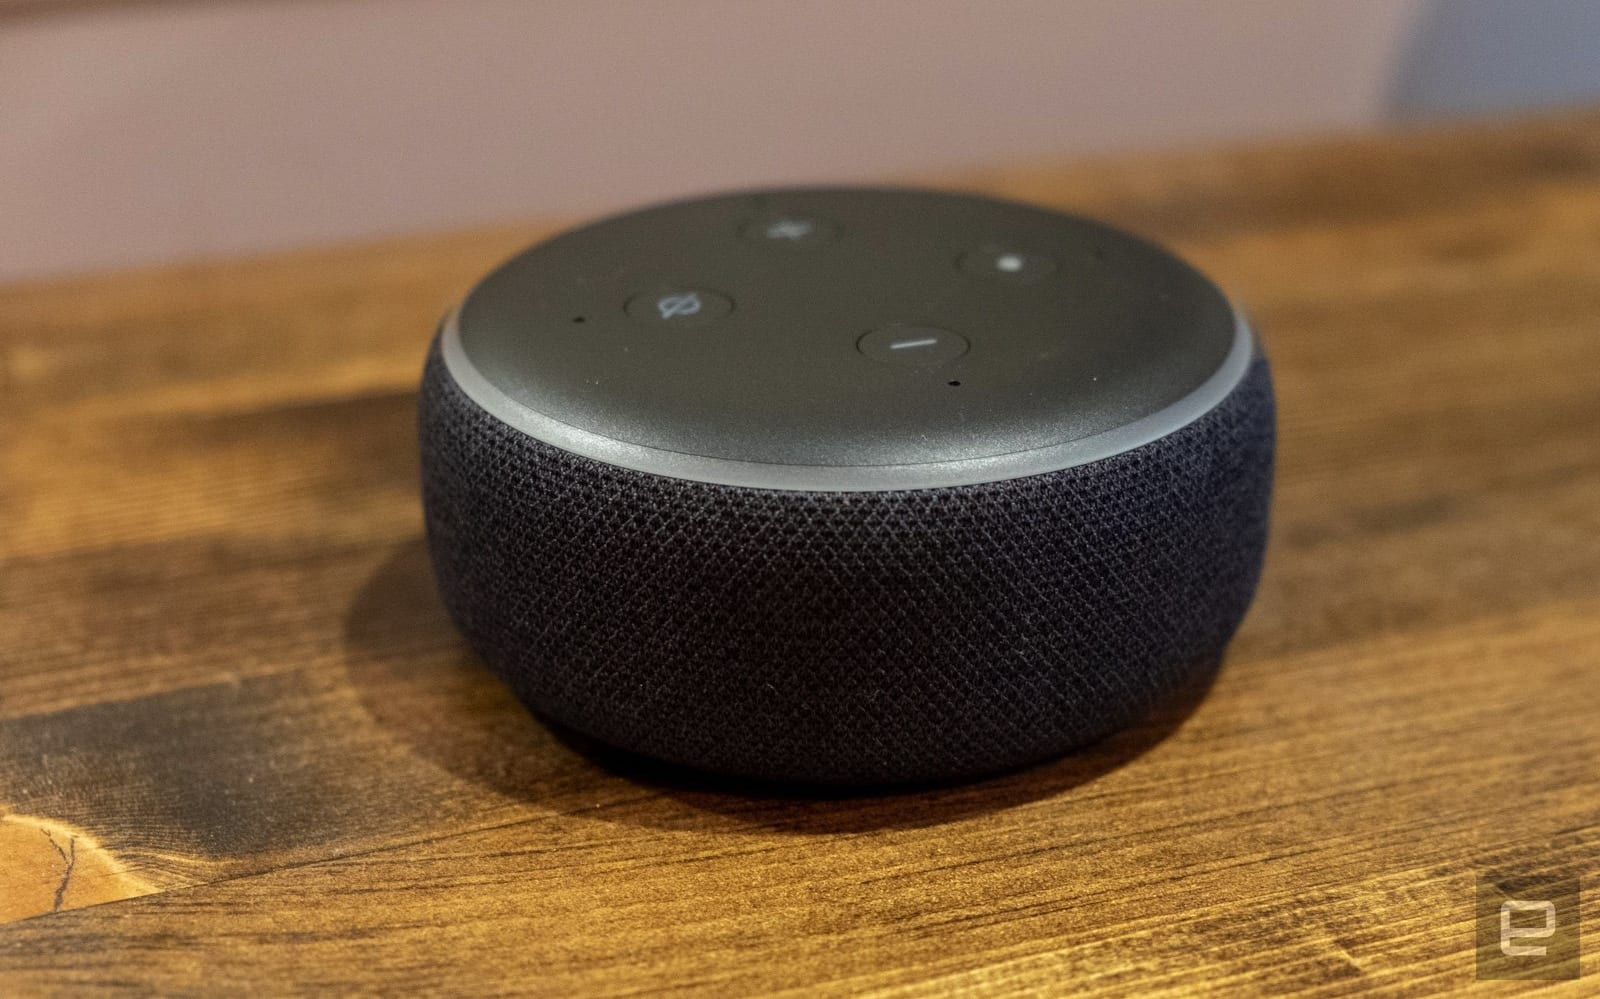 Alexa can now speak Spanish in the US